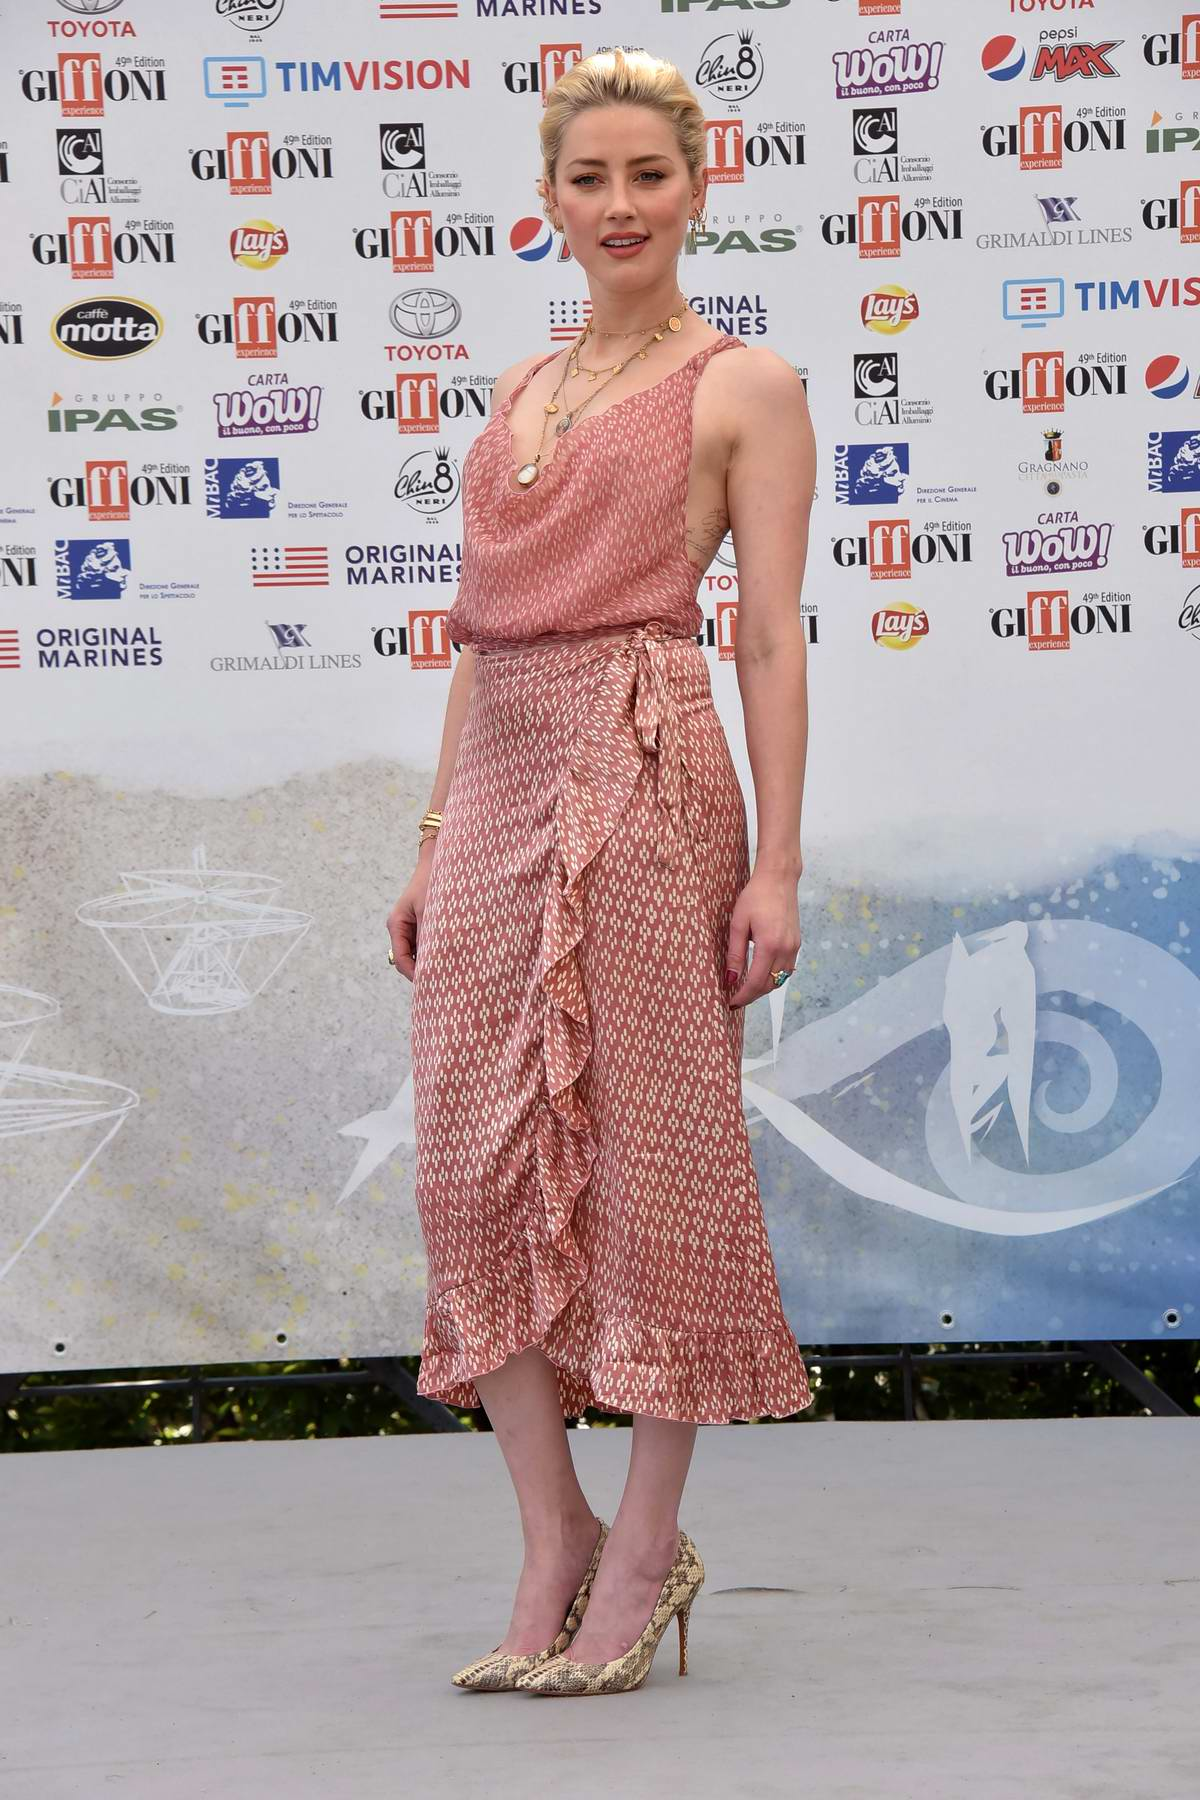 Amber Heard attends the Blue Carpet at 2019 Giffoni Valle Piana Film Festival in Salerno, Italy